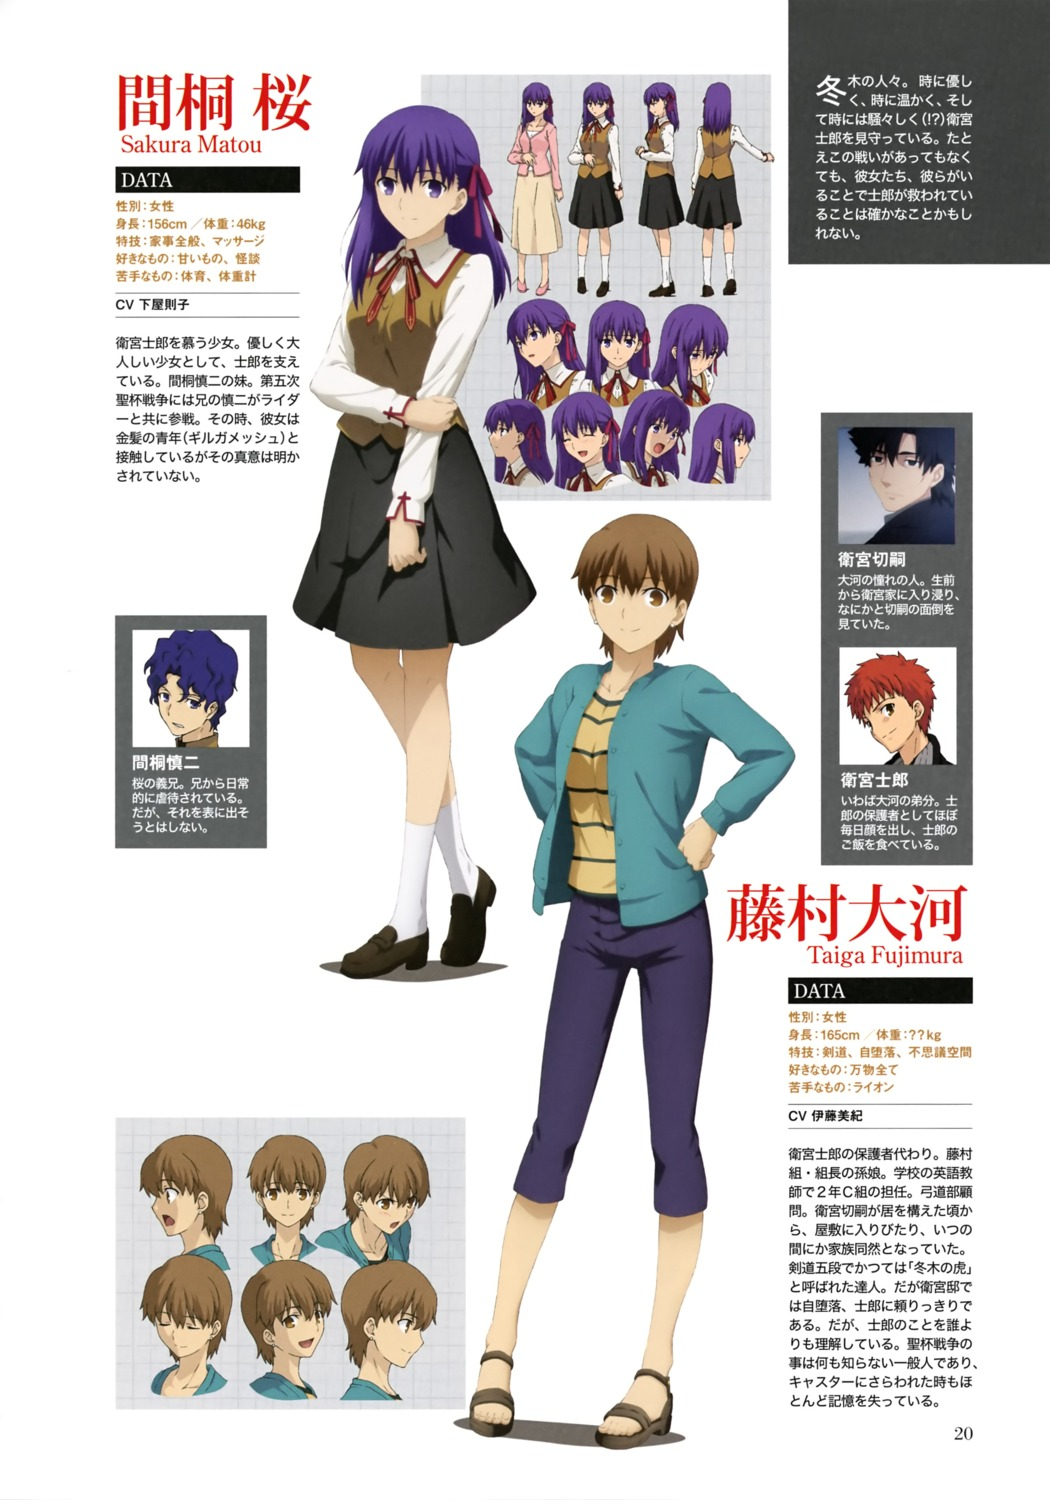 character_design emiya_kiritsugu emiya_shirou expression fate/stay_night fate/stay_night_unlimited_blade_works fujimura_taiga matou_sakura matou_shinji seifuku